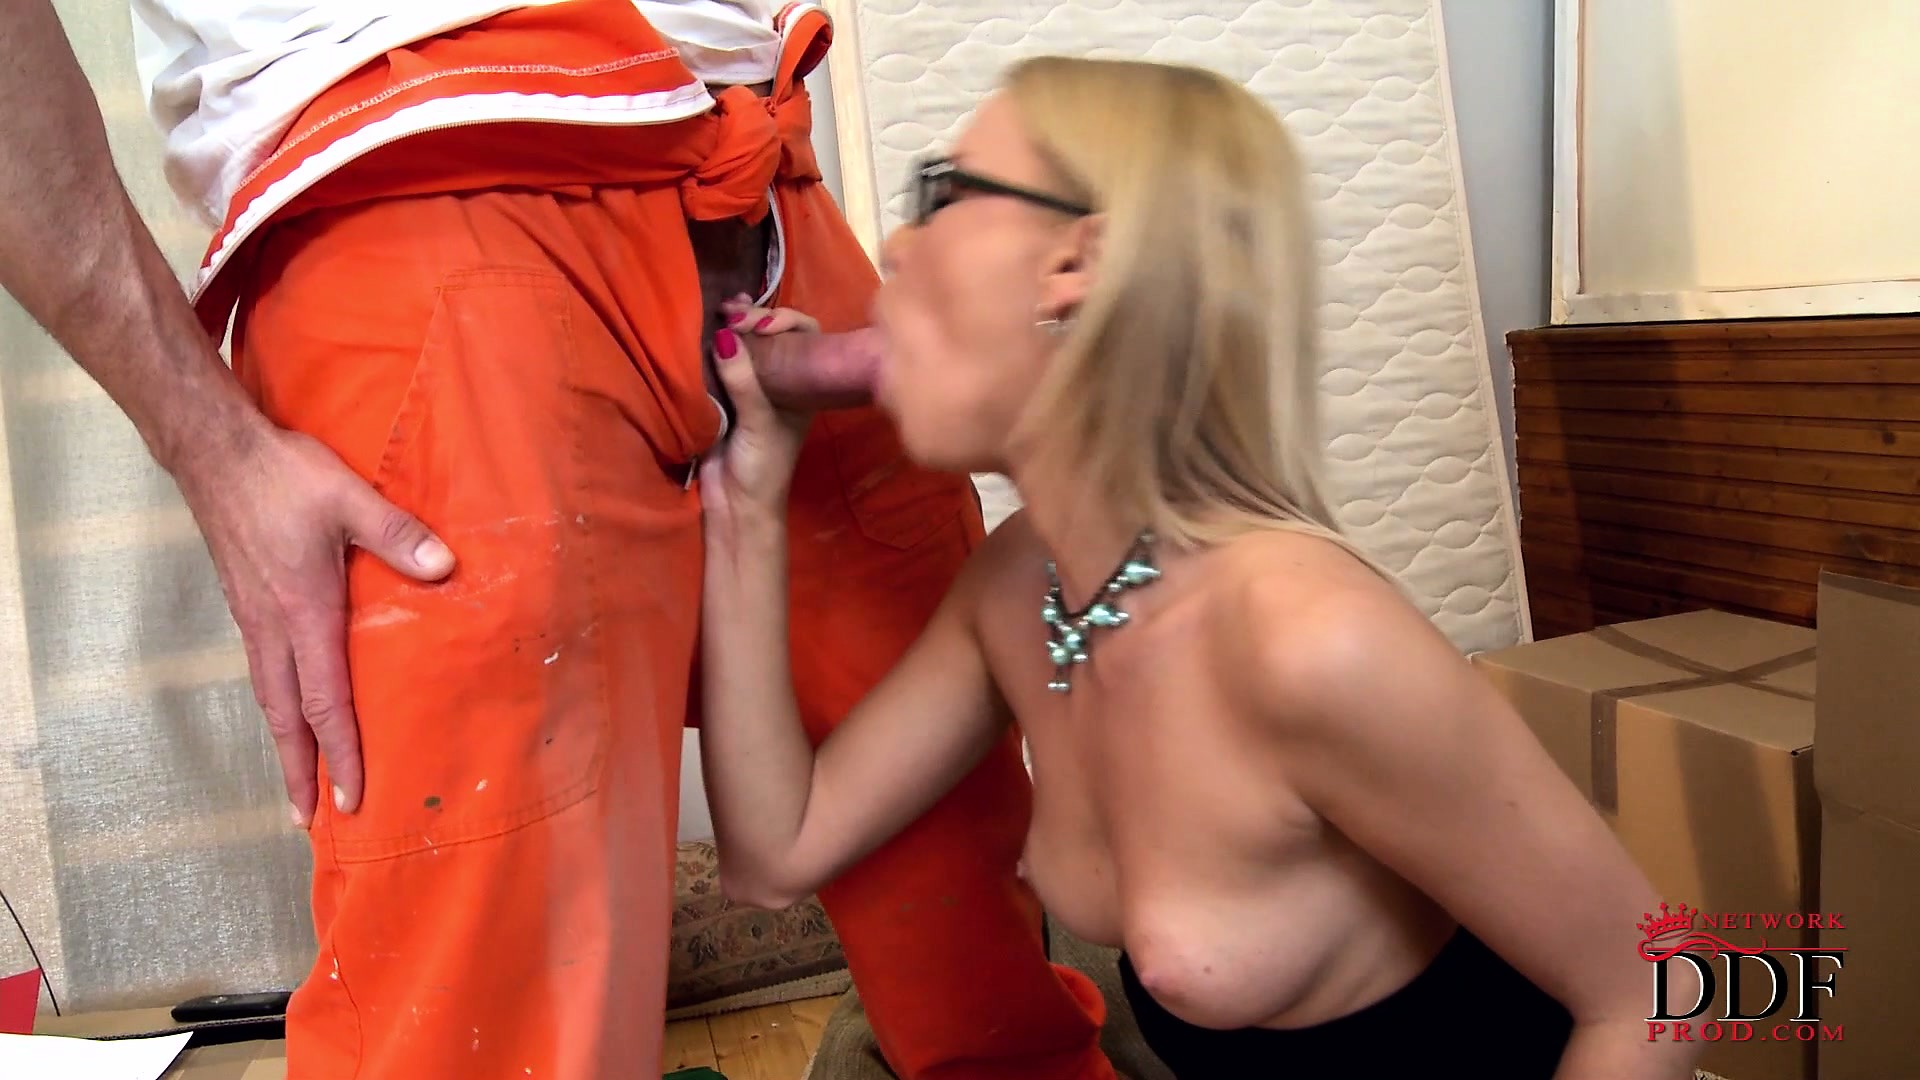 Porno Video of Blonde Slut With Glasses Gets A Big Load Shot Down Her Throat